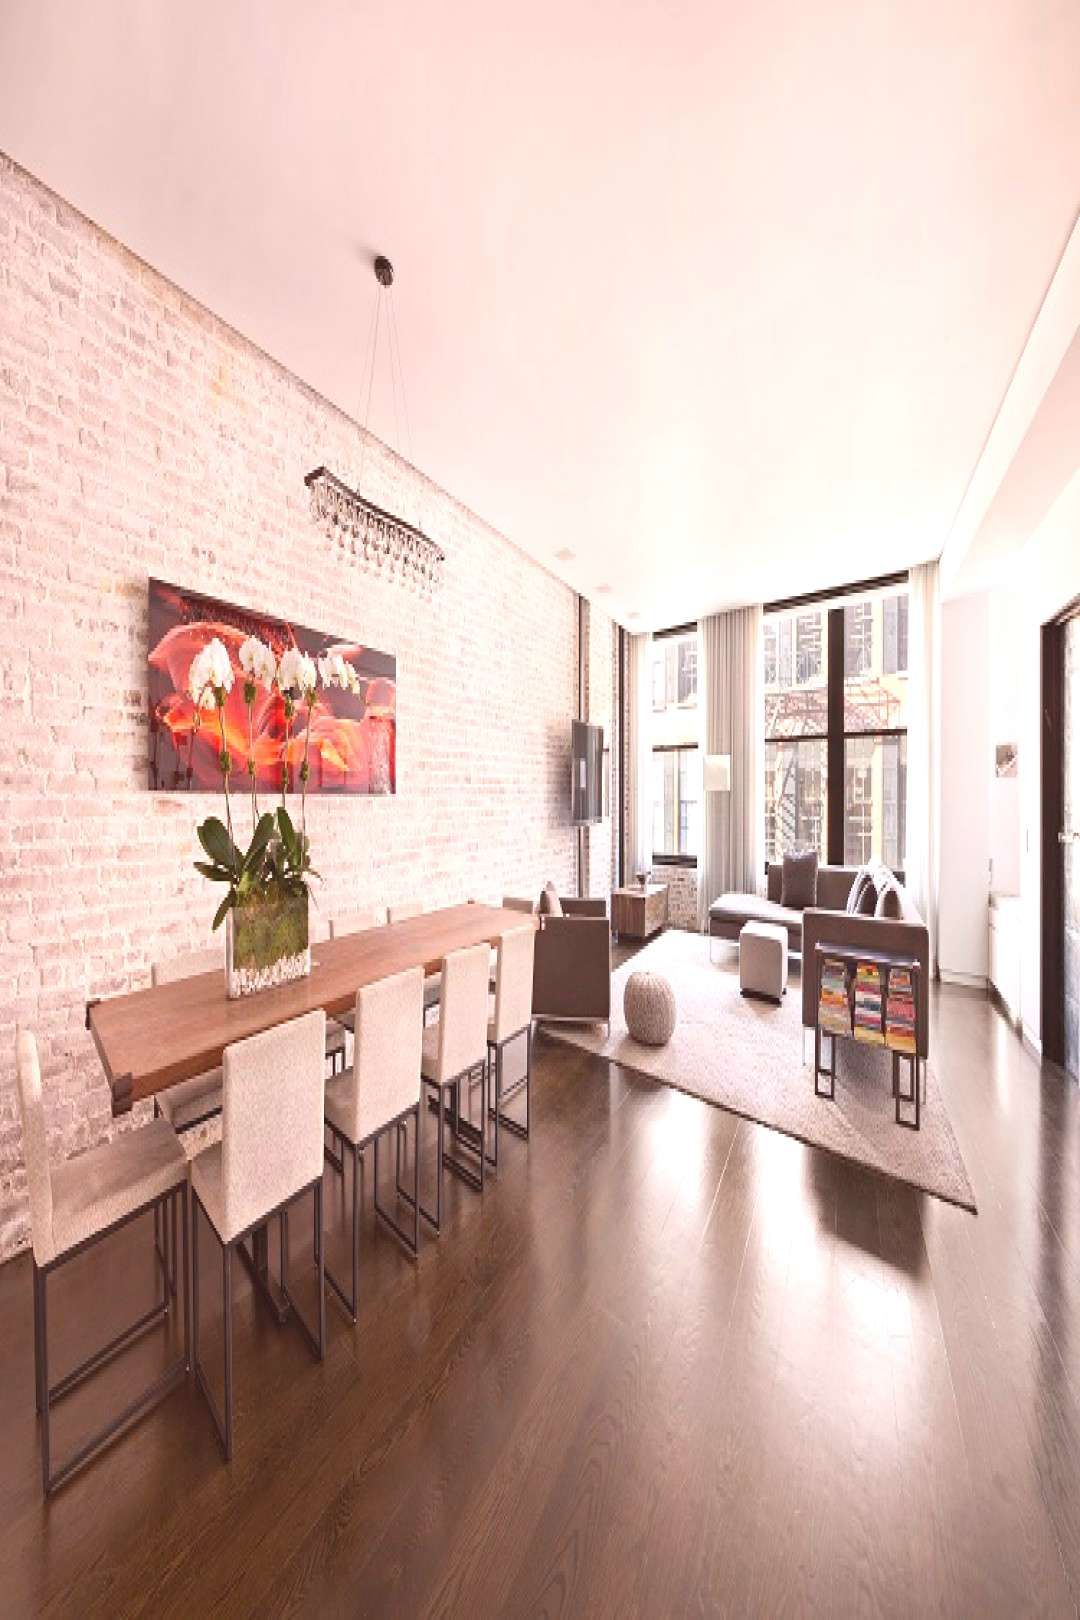 UltraChic Crosby Street Loft Hits the Market in SohoYou can find Soho and more on our websiteUltraChic Crosby Street Loft Hits the Market in Soho